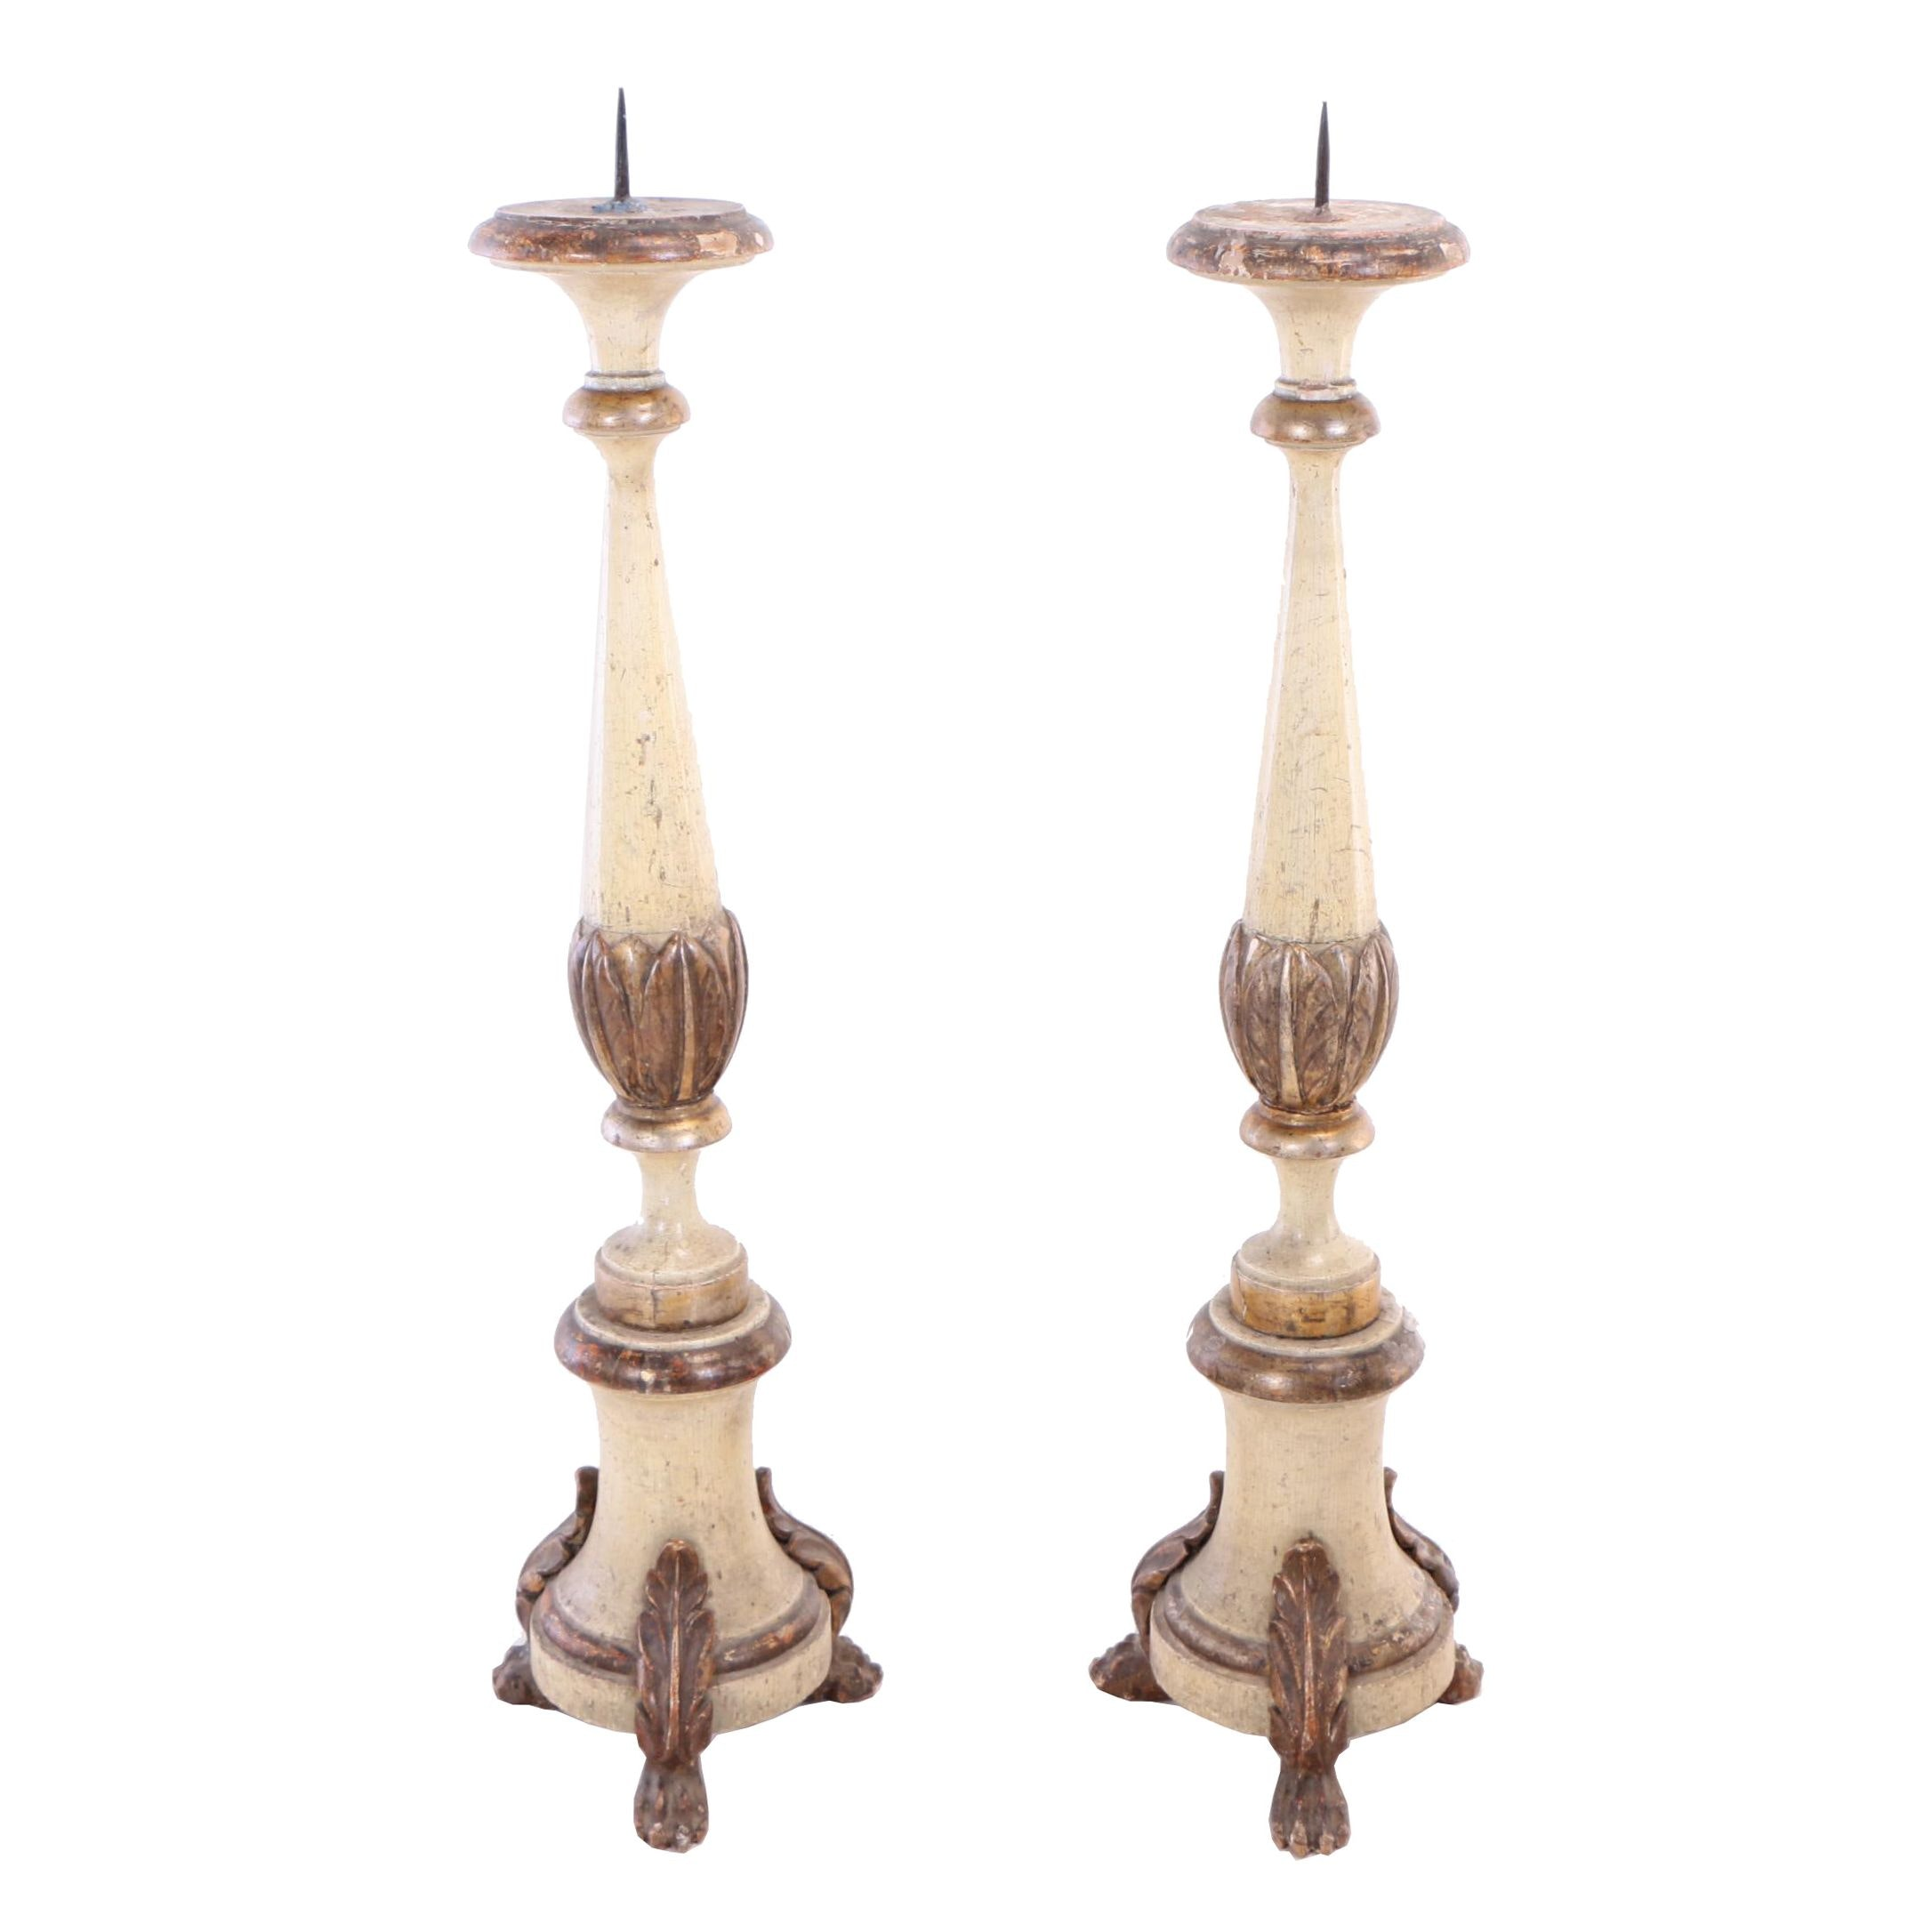 Painted and Parcel-Gilt Pricket Candlesticks, Probably Italian, 19th Century